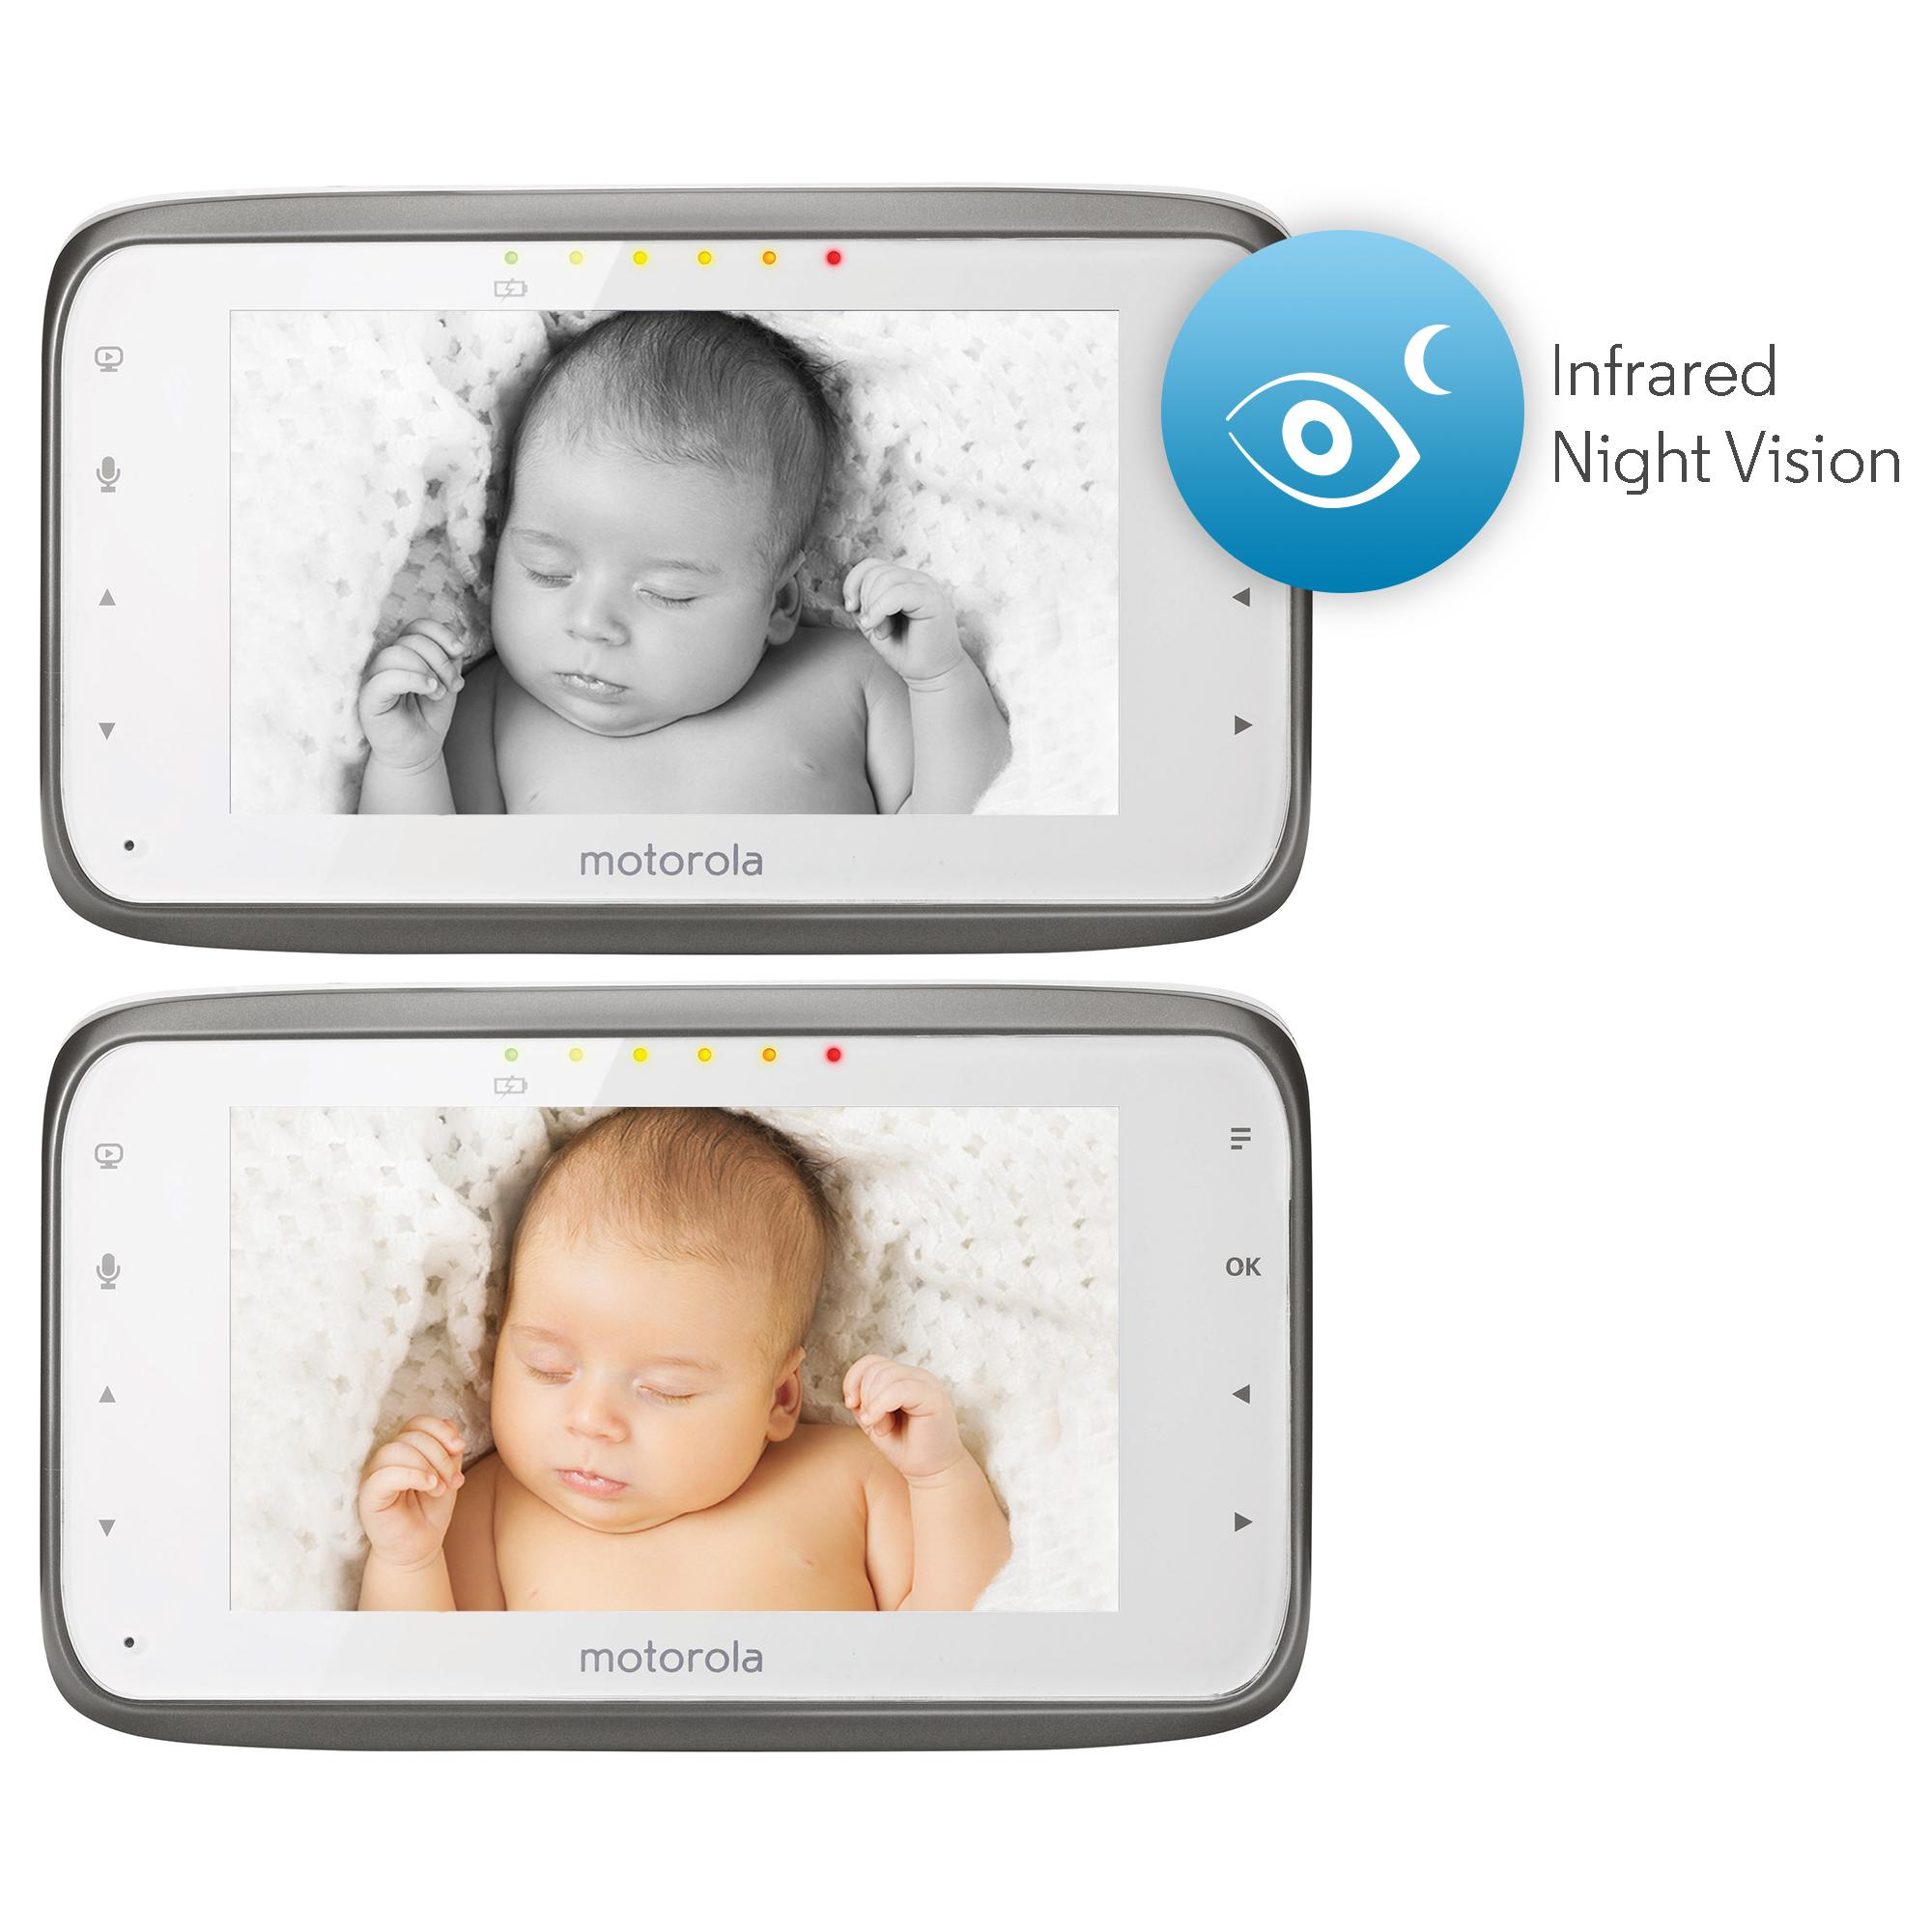 Top 5 Best iPhone Baby Monitors - WiFi Baby Camera